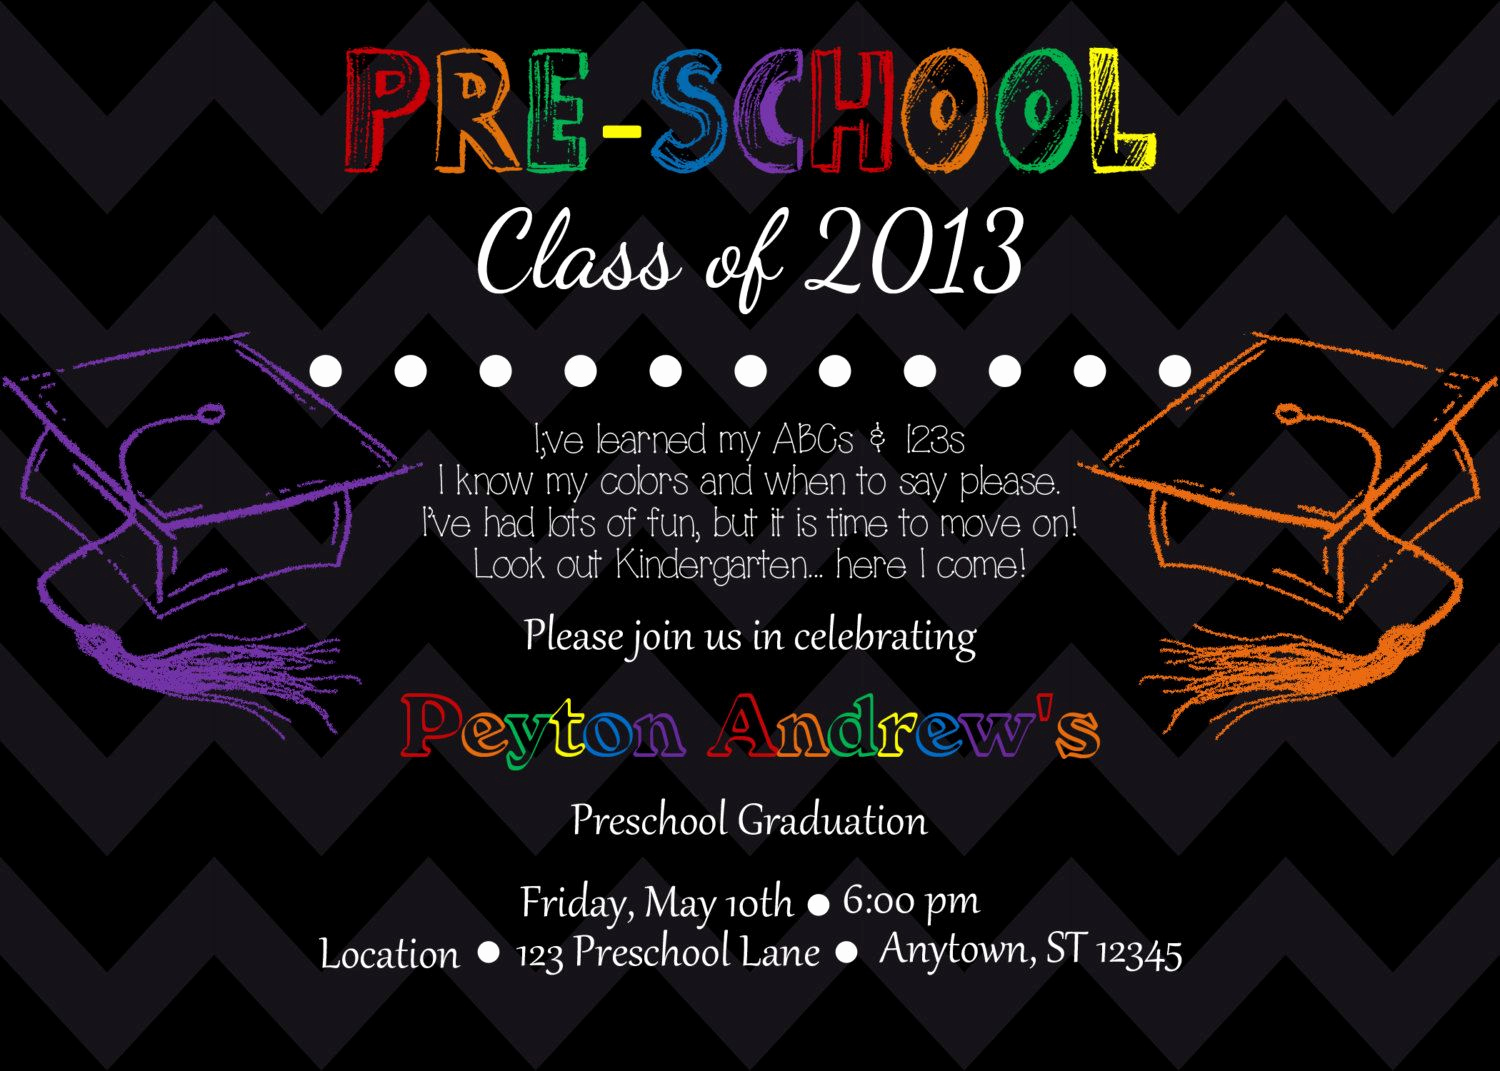 Preschool Graduation Invitation Template Best Of Preschool Kindergarten Graduation Invitation by